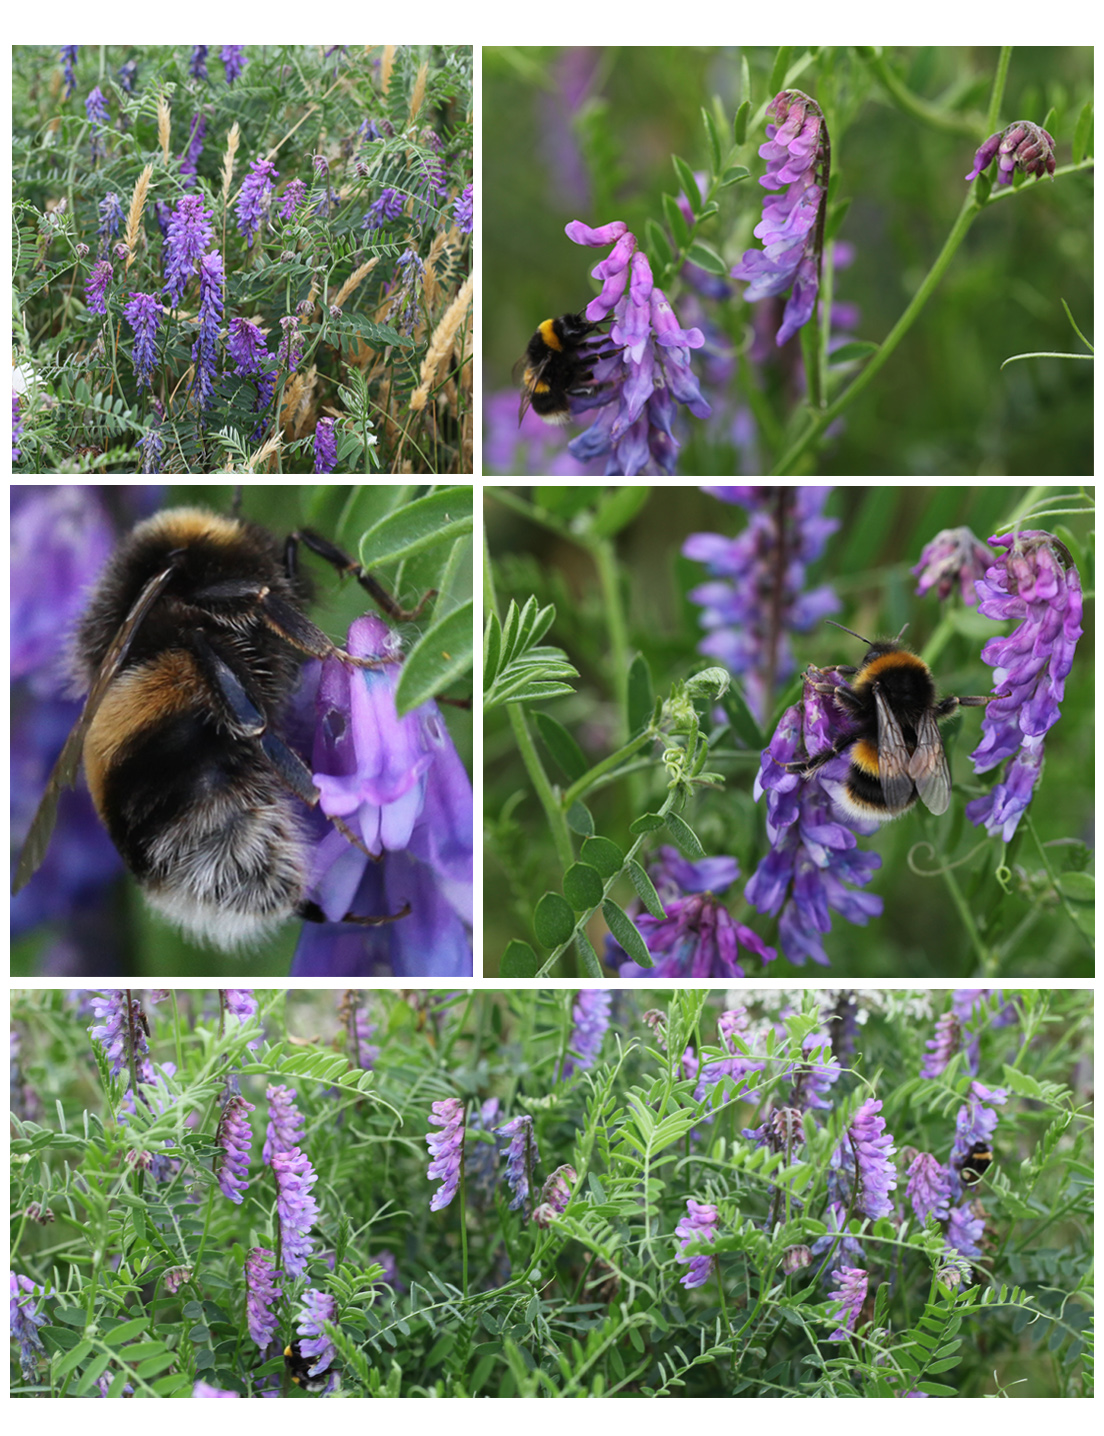 Tufted vetch and bumble bees in the Garden 2013 (Squire)